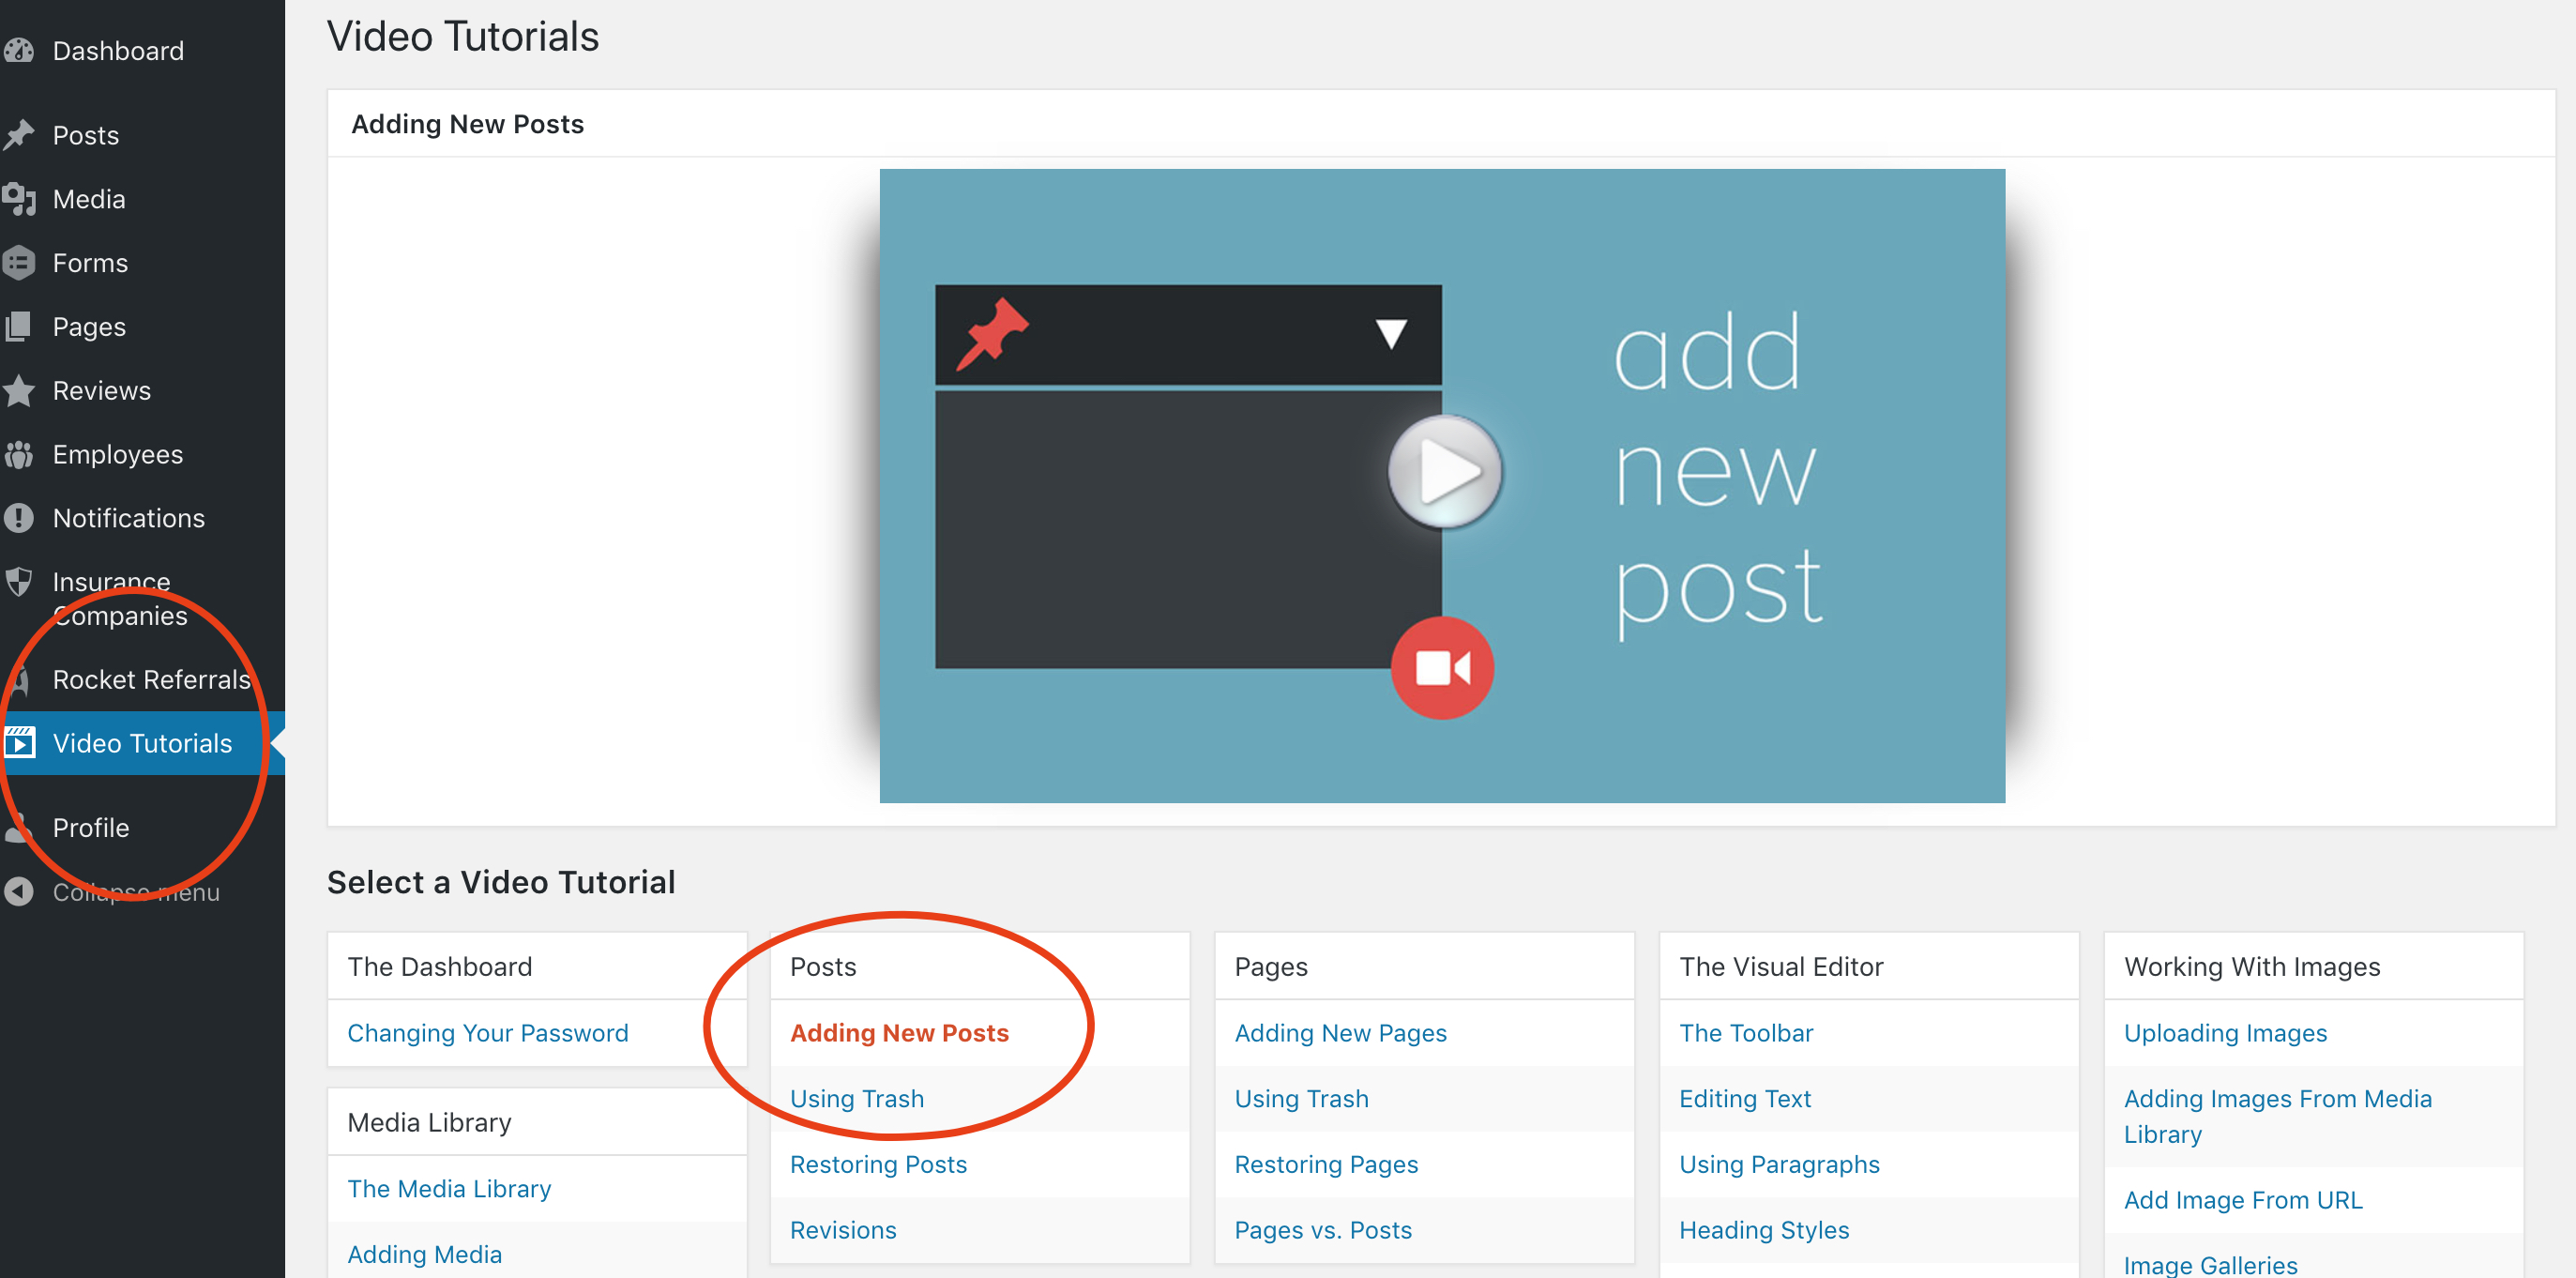 How Do I Add A New Blog Post To My Website? – BrightFire